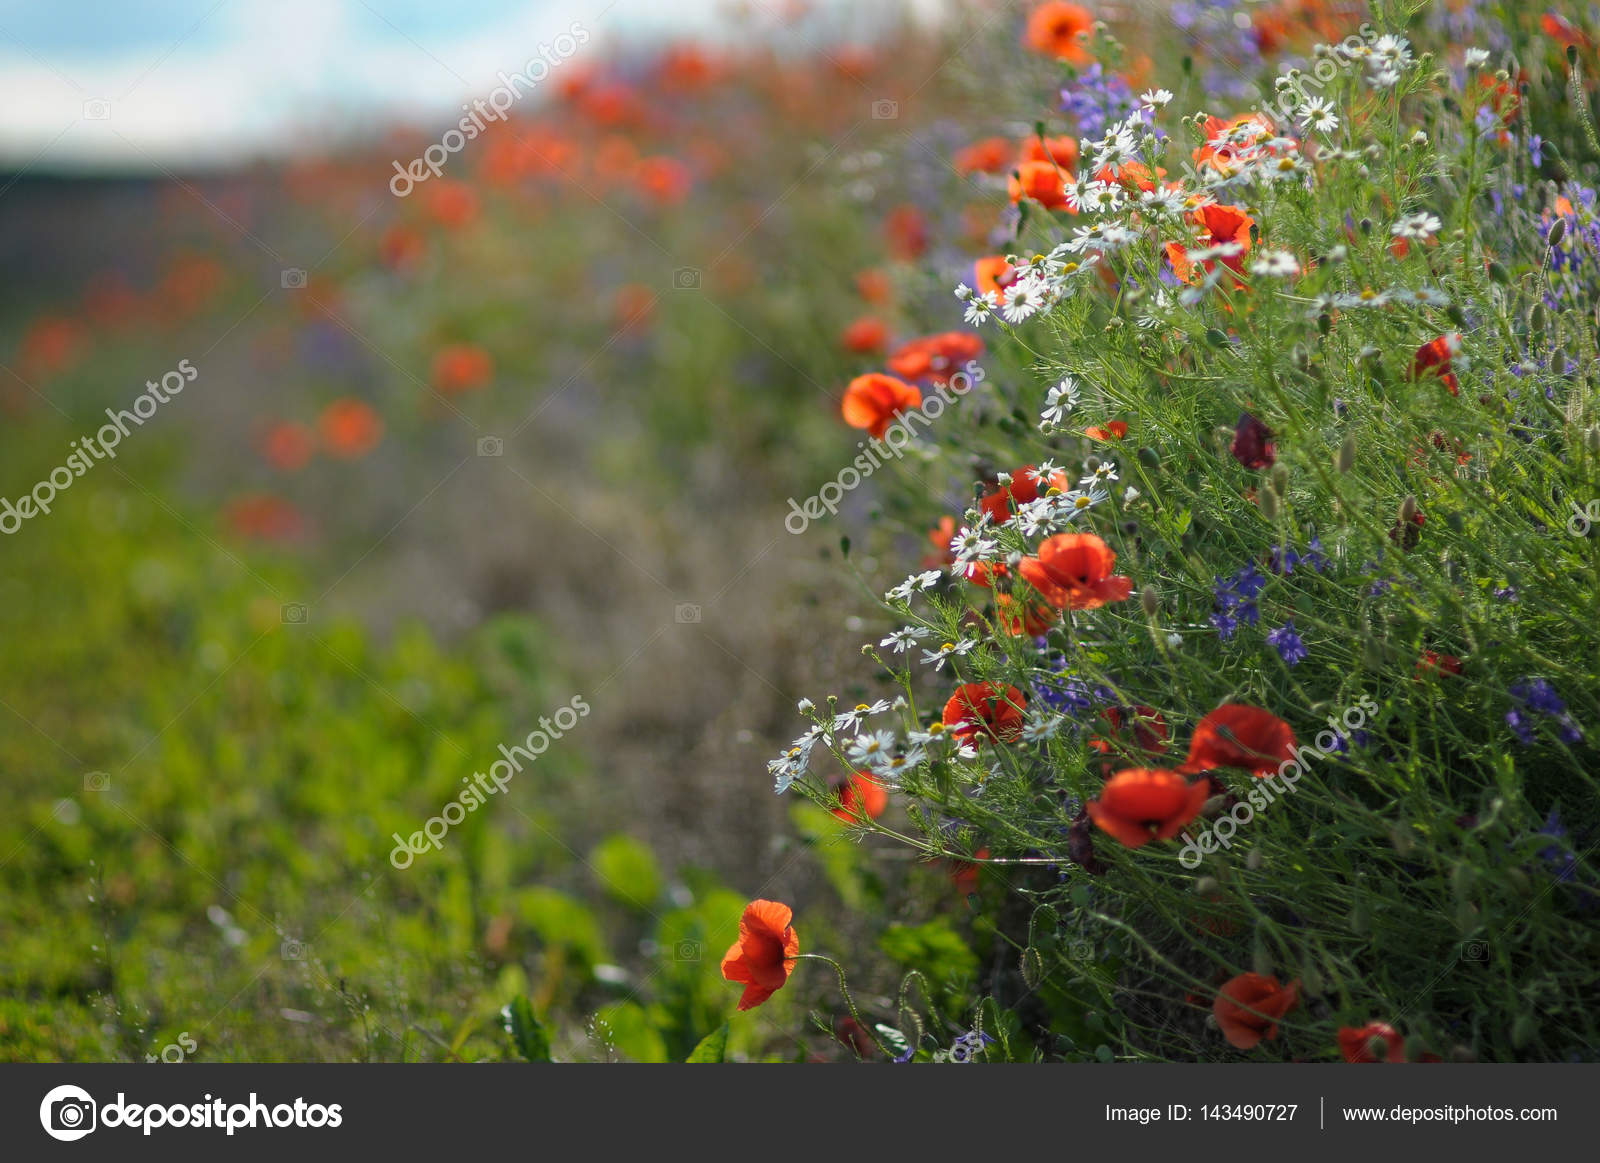 Wild flowers daisies and poppies along field paths stock photo wild flowers daisies and poppies along field paths stock photo izmirmasajfo Choice Image